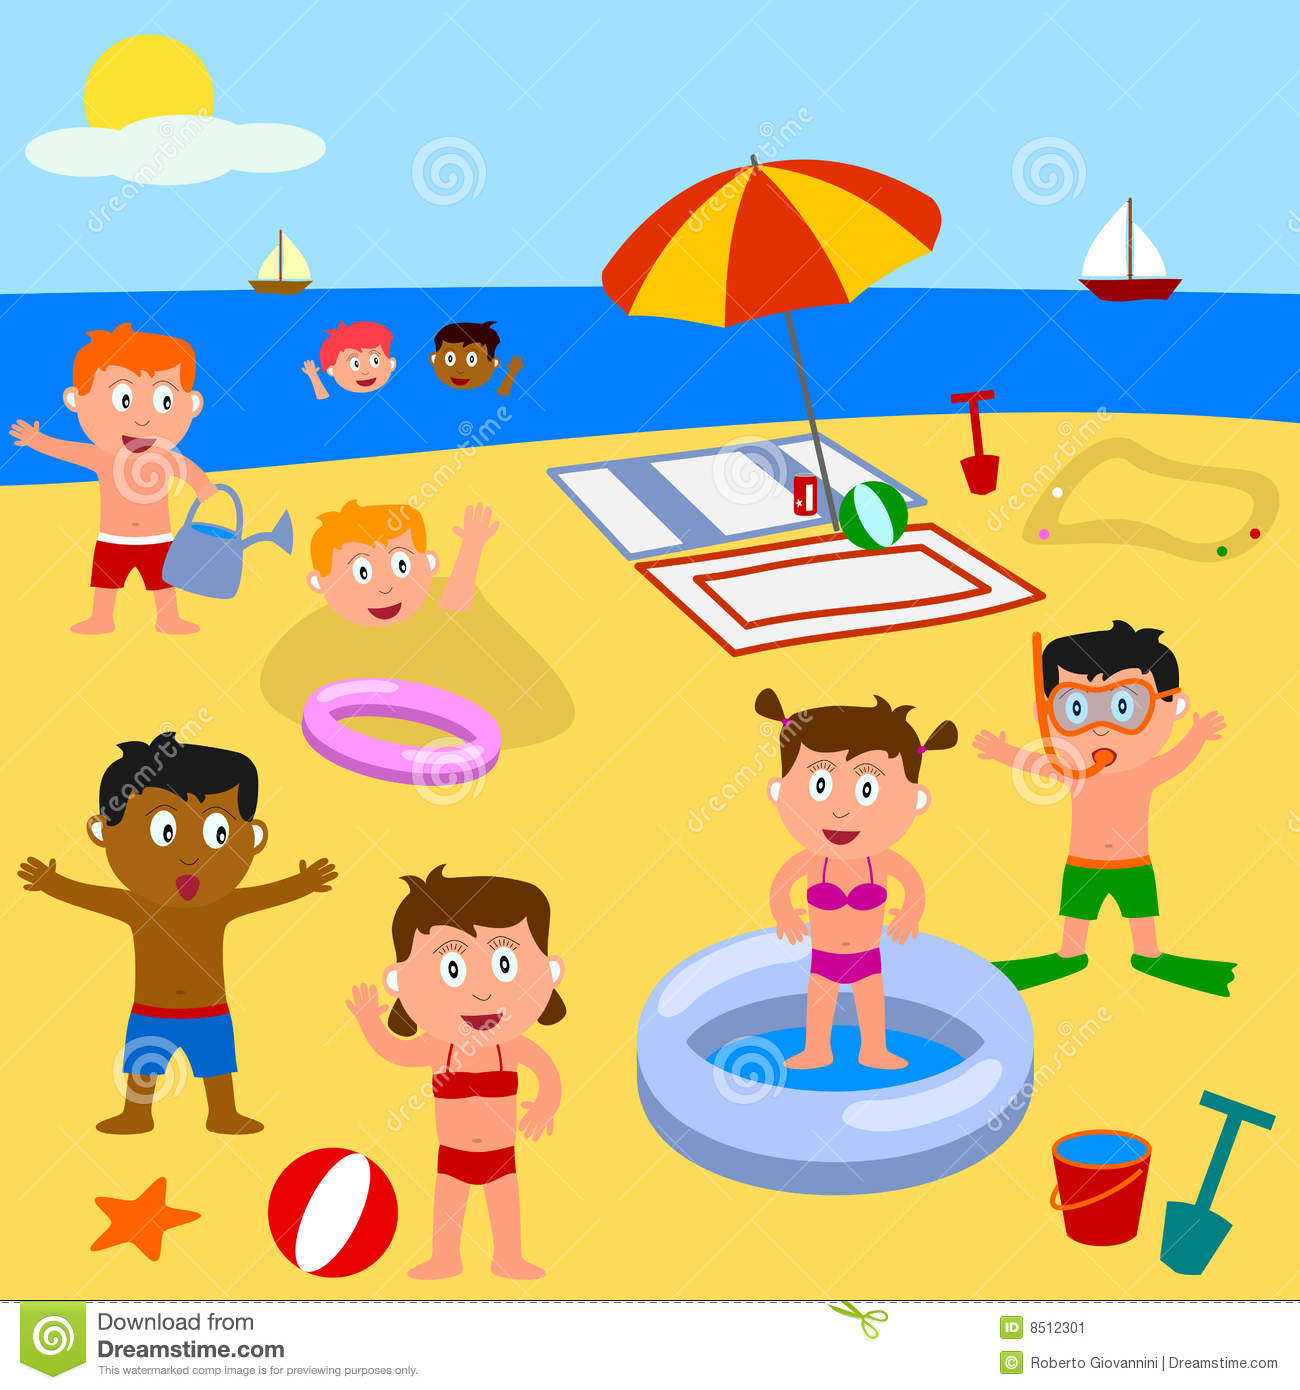 Kids playing together on the beach  Eps file available Accepted for    Kids Playing On The Beach Clipart